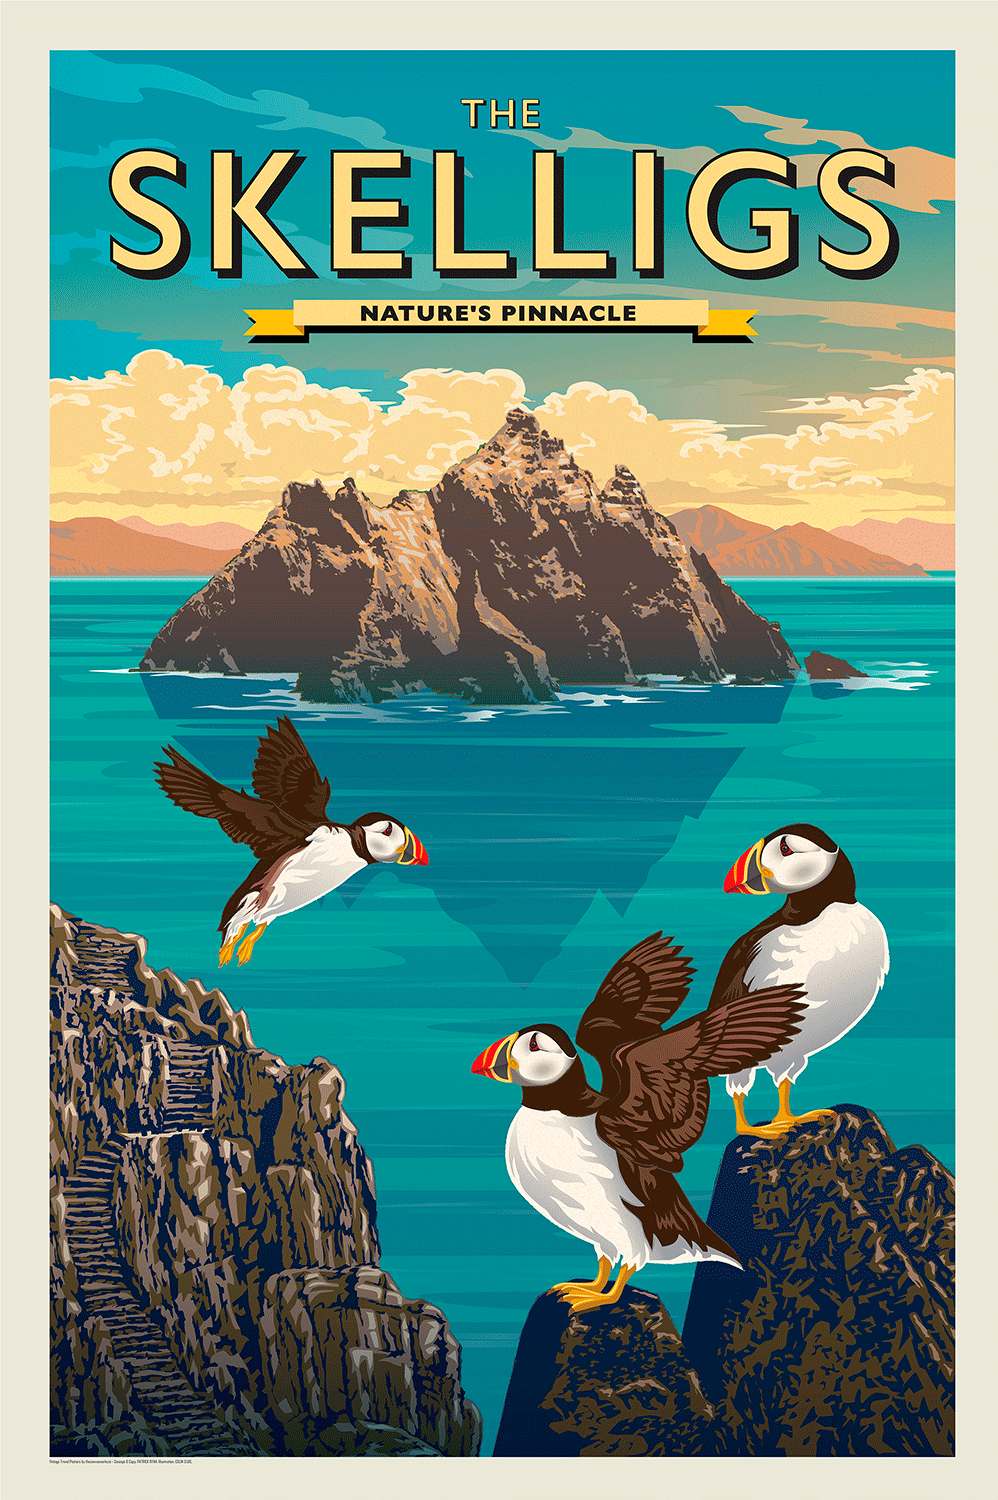 The Skelligs, Nature's Pinnacle